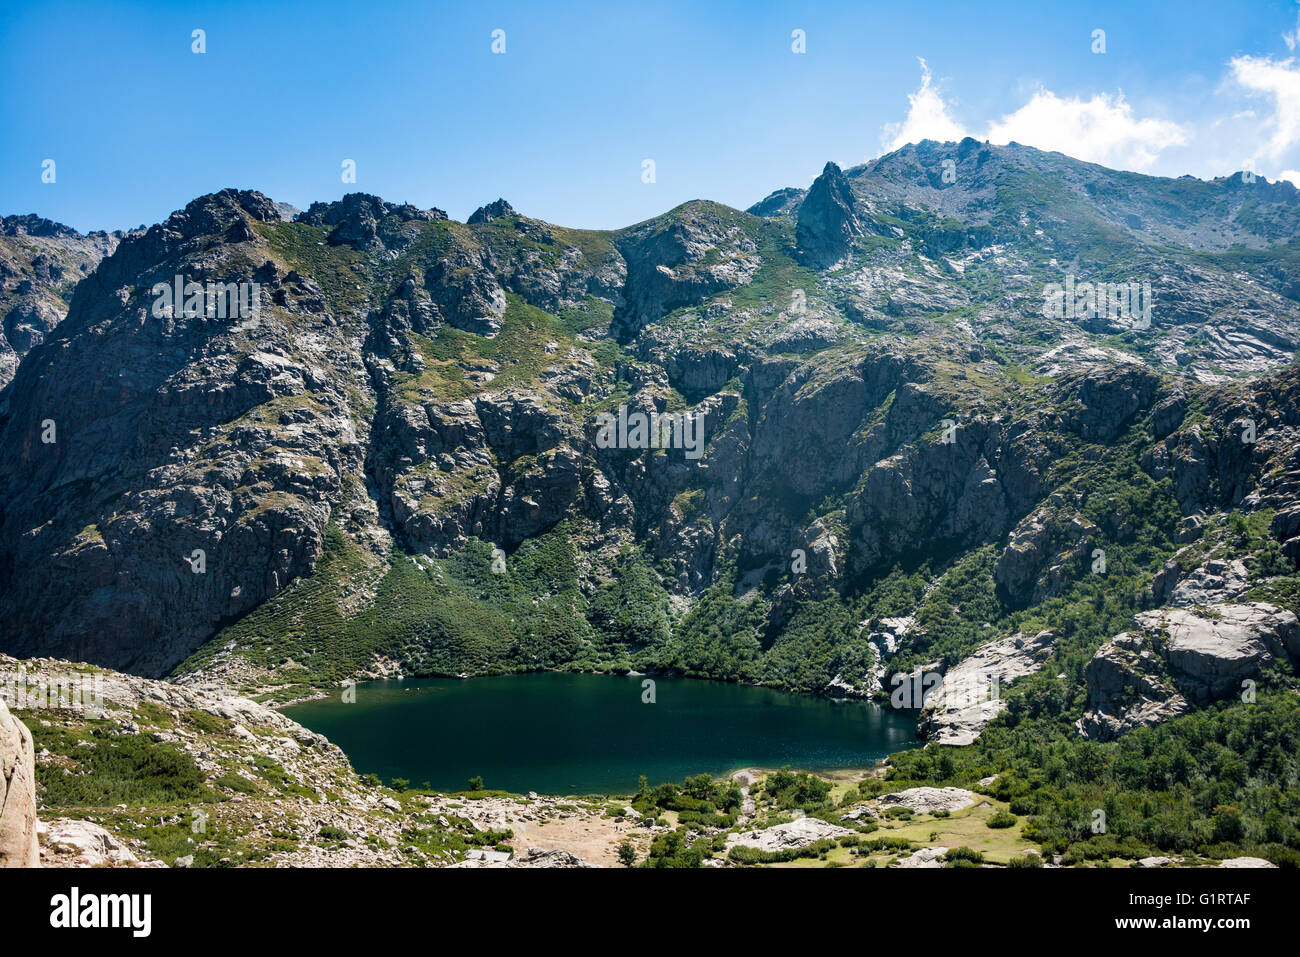 Mountain lake Lac de Melo, view from the Lac de Capitello, mountains in background, Restonica high valley - Stock Image